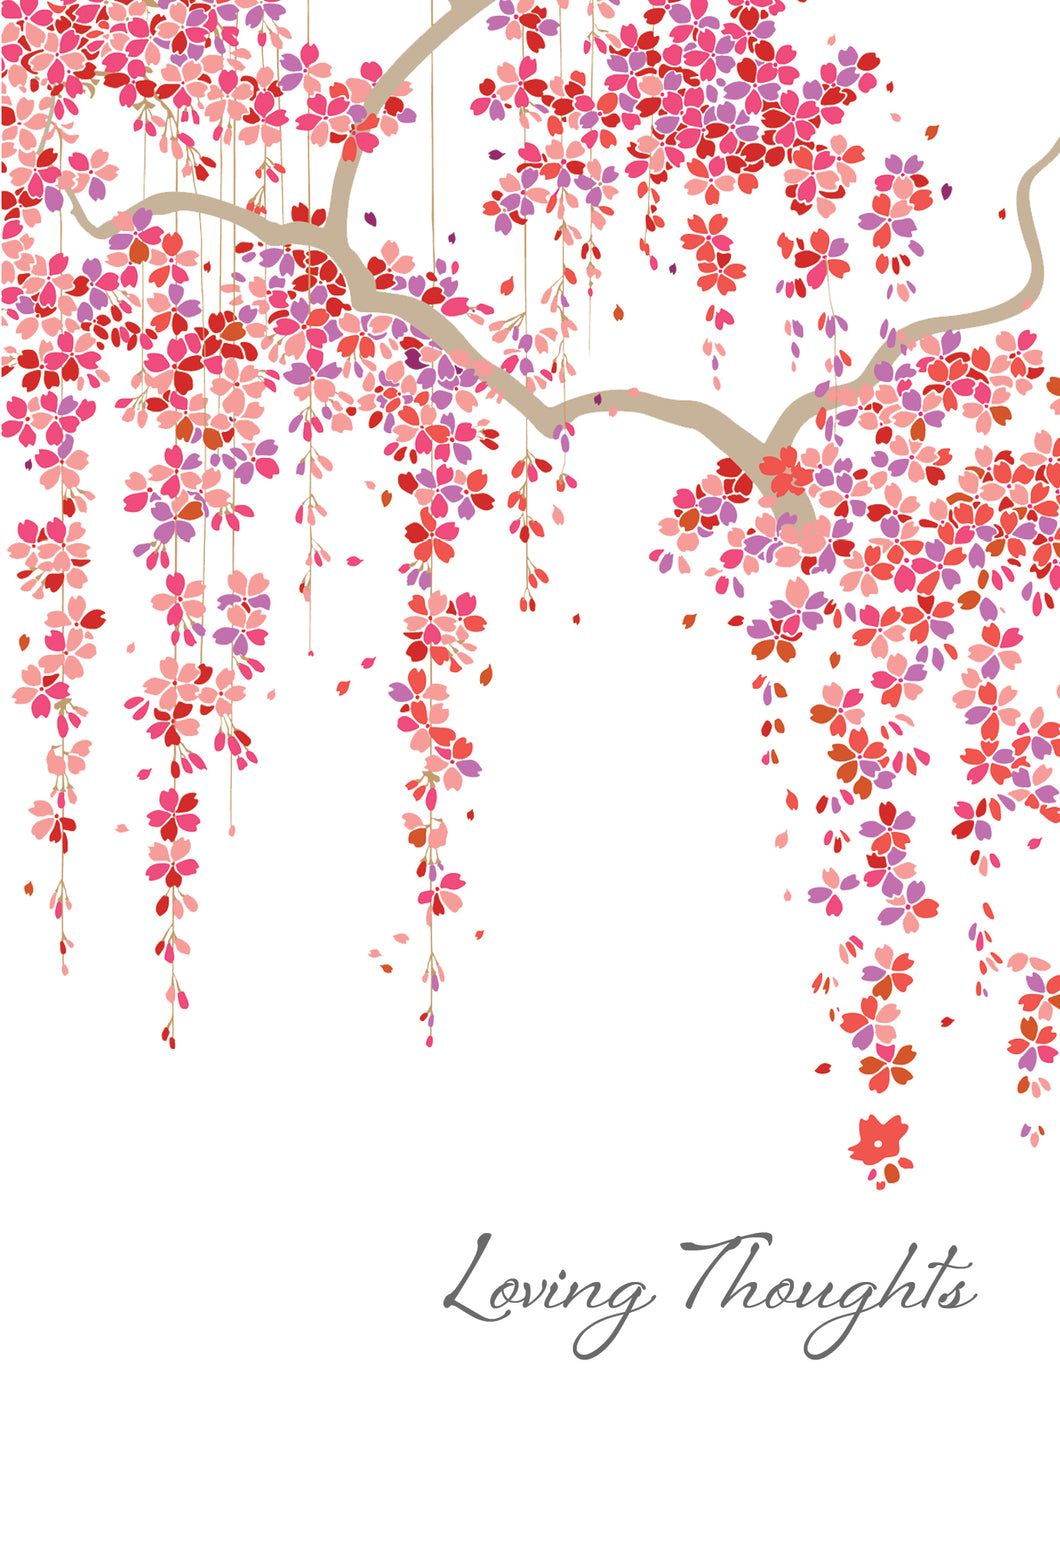 Sympathy Card Loving Thoughts